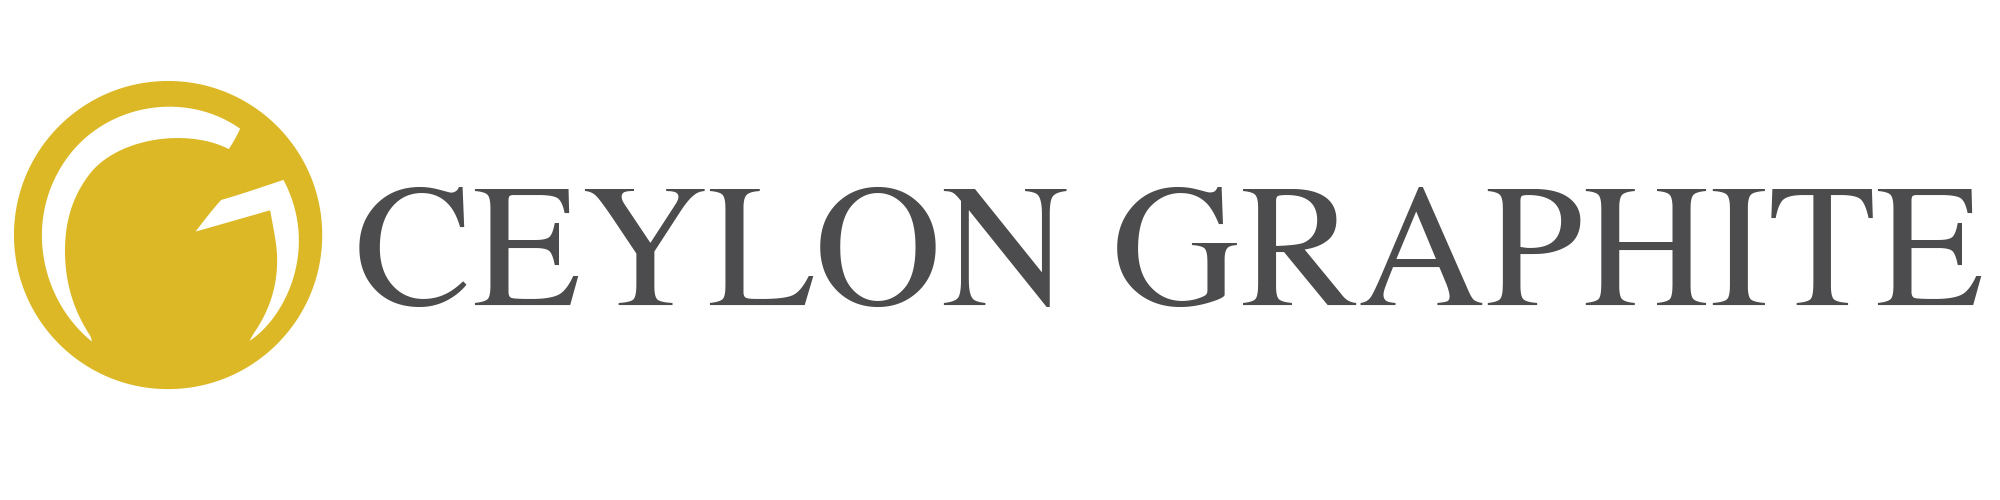 Ceylon Graphite Announces New Appointments